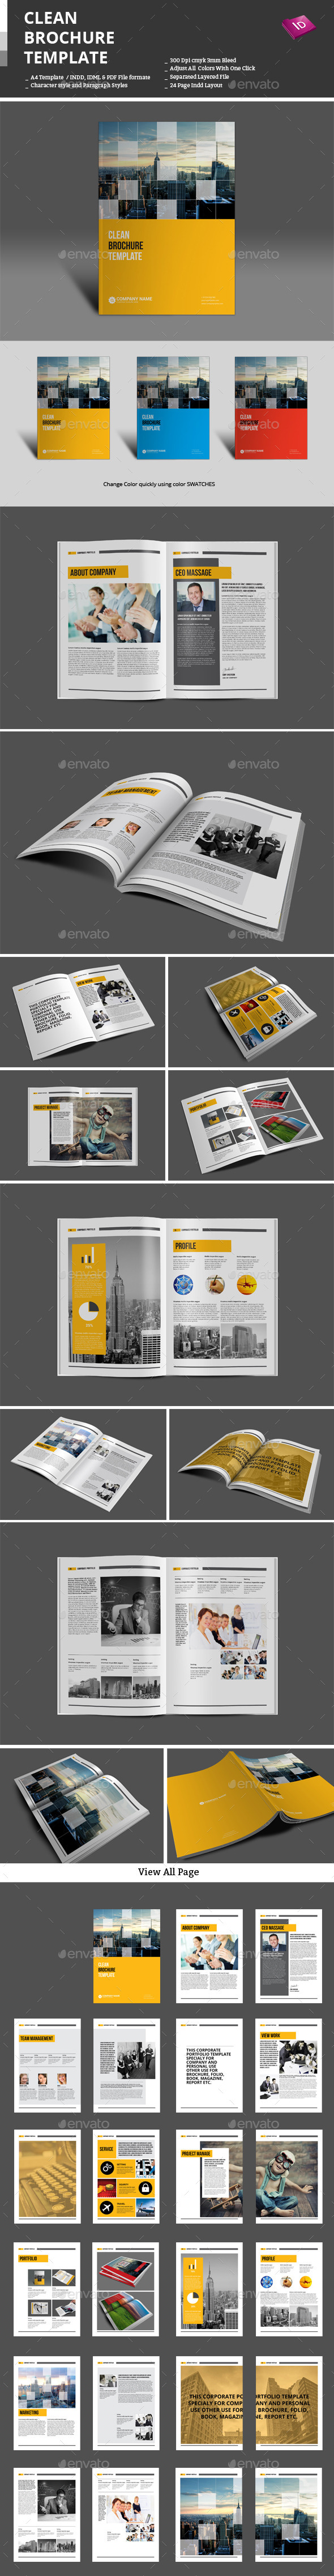 GraphicRiver Clean Brochure Template 9517748